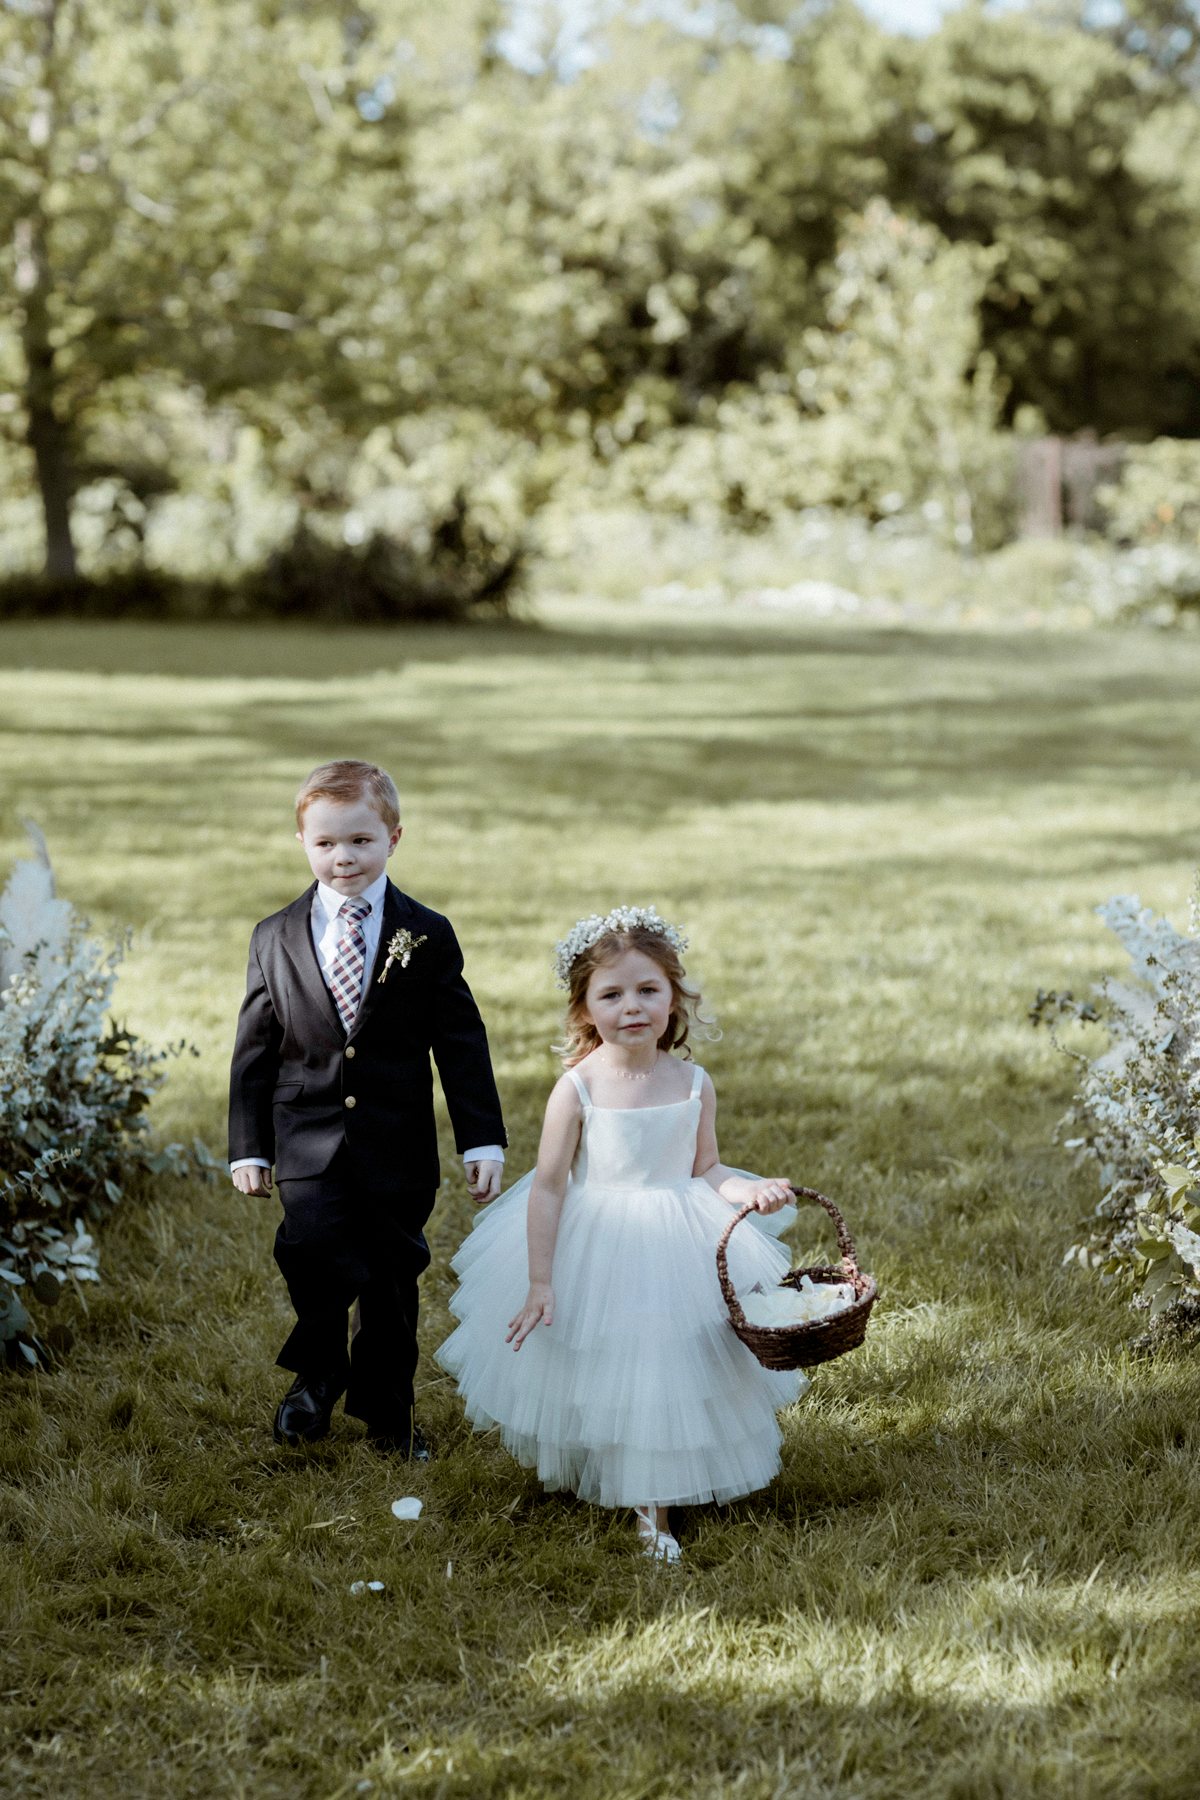 flower girl and ring bearer outside walking on grass